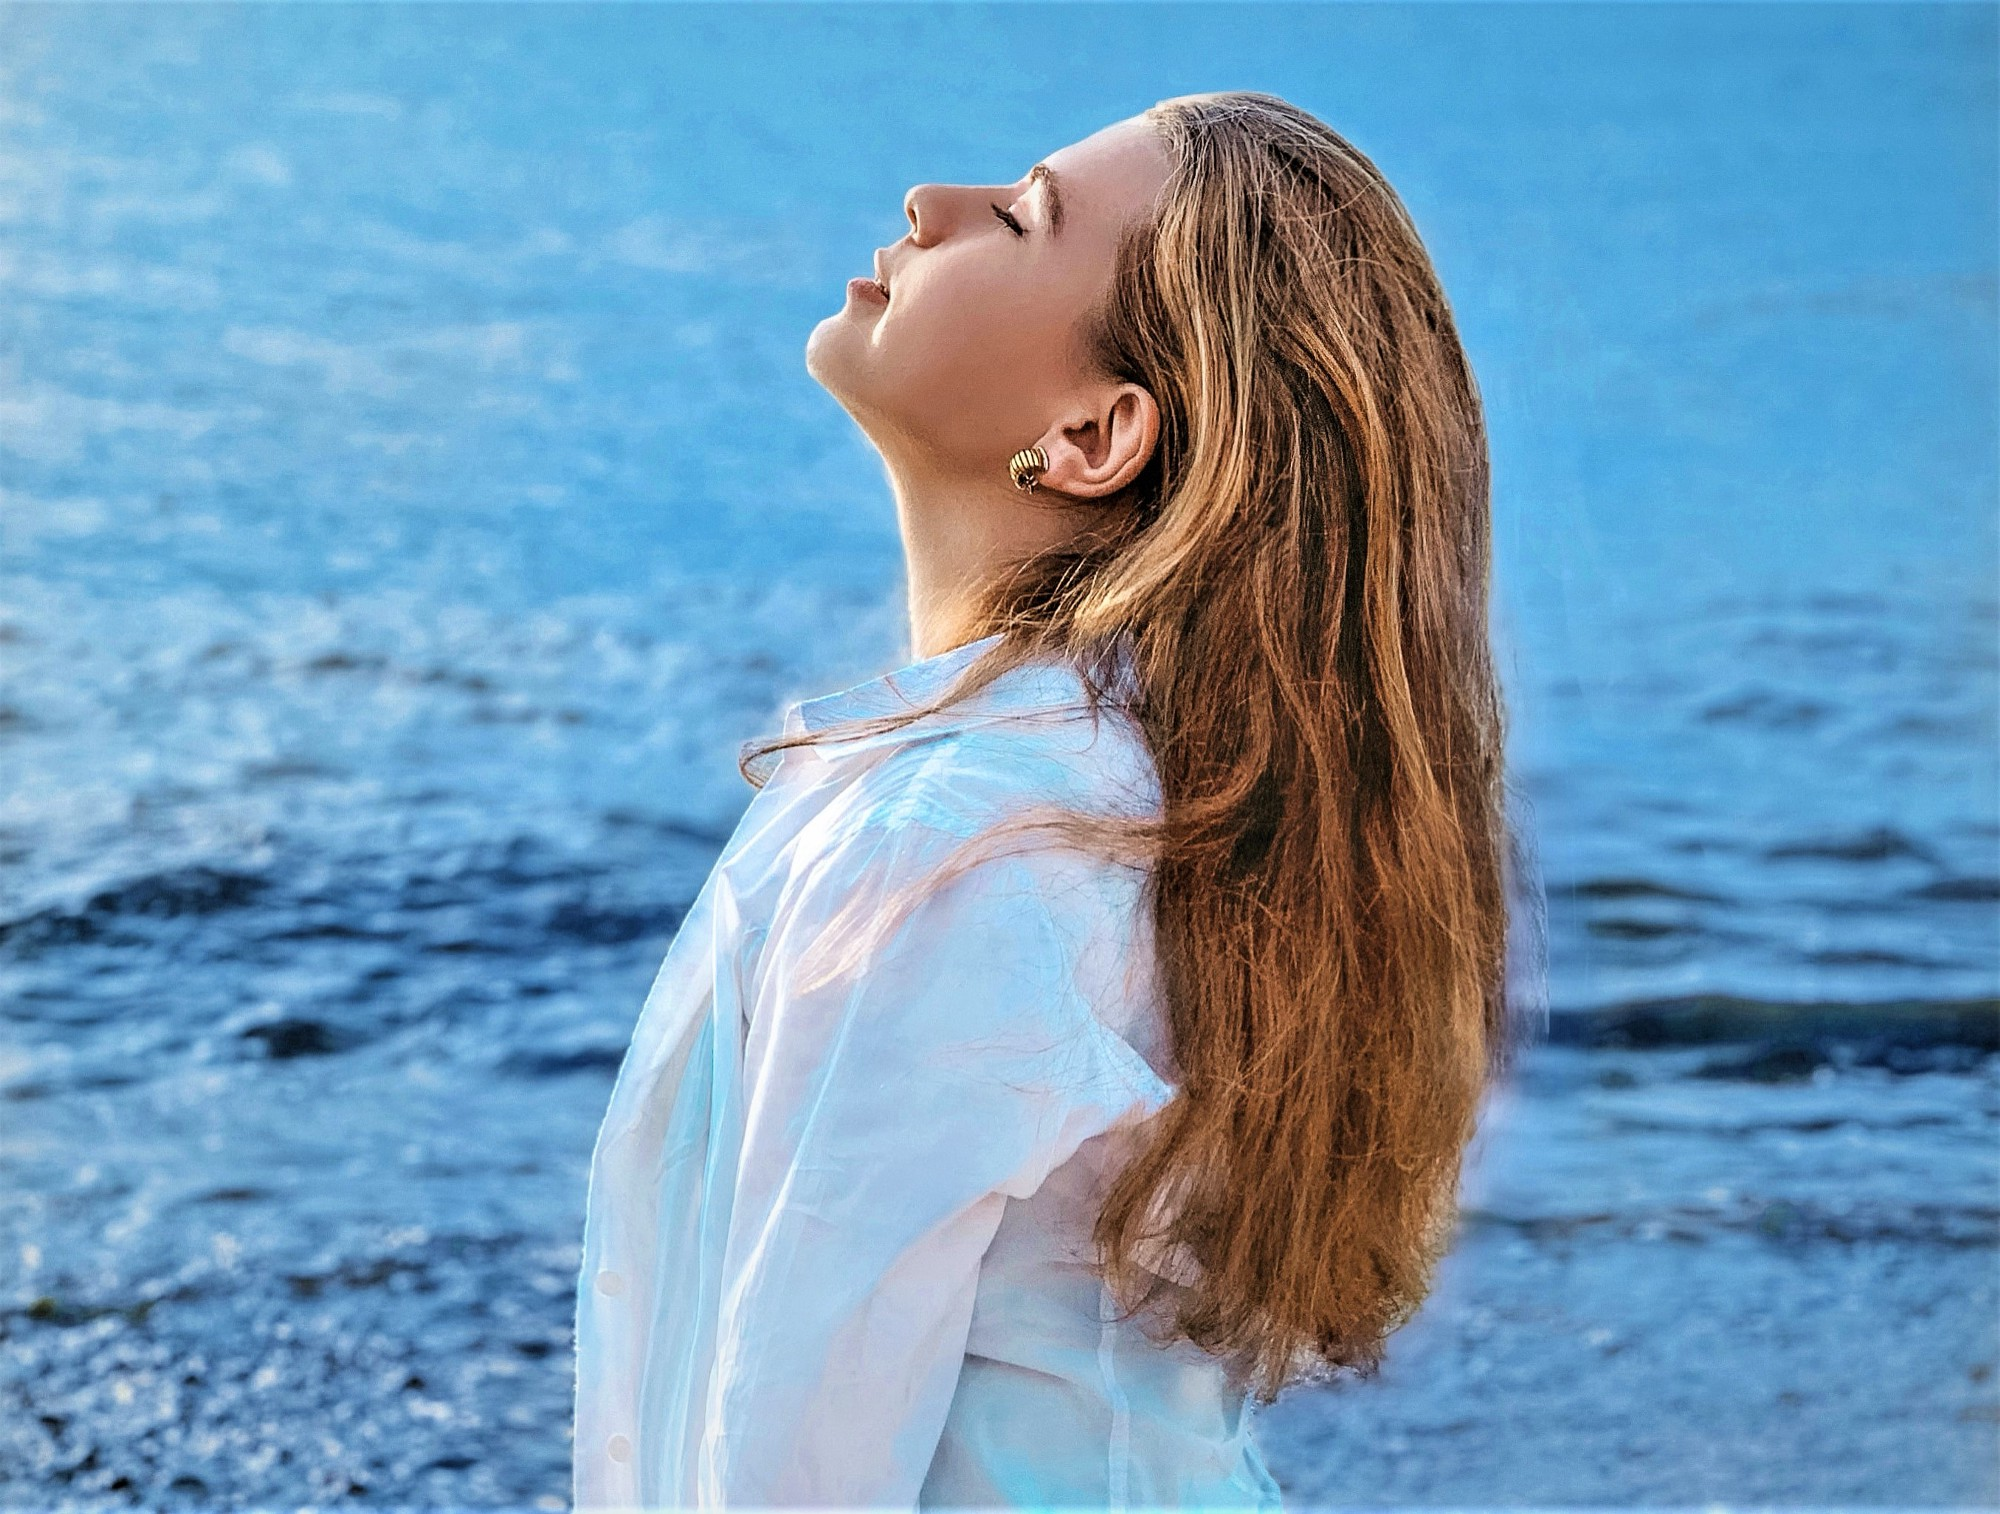 profile of girl with long brown hair wearing white long sleeve shirt with eyes closed and head tilted up with blue ocean behind her